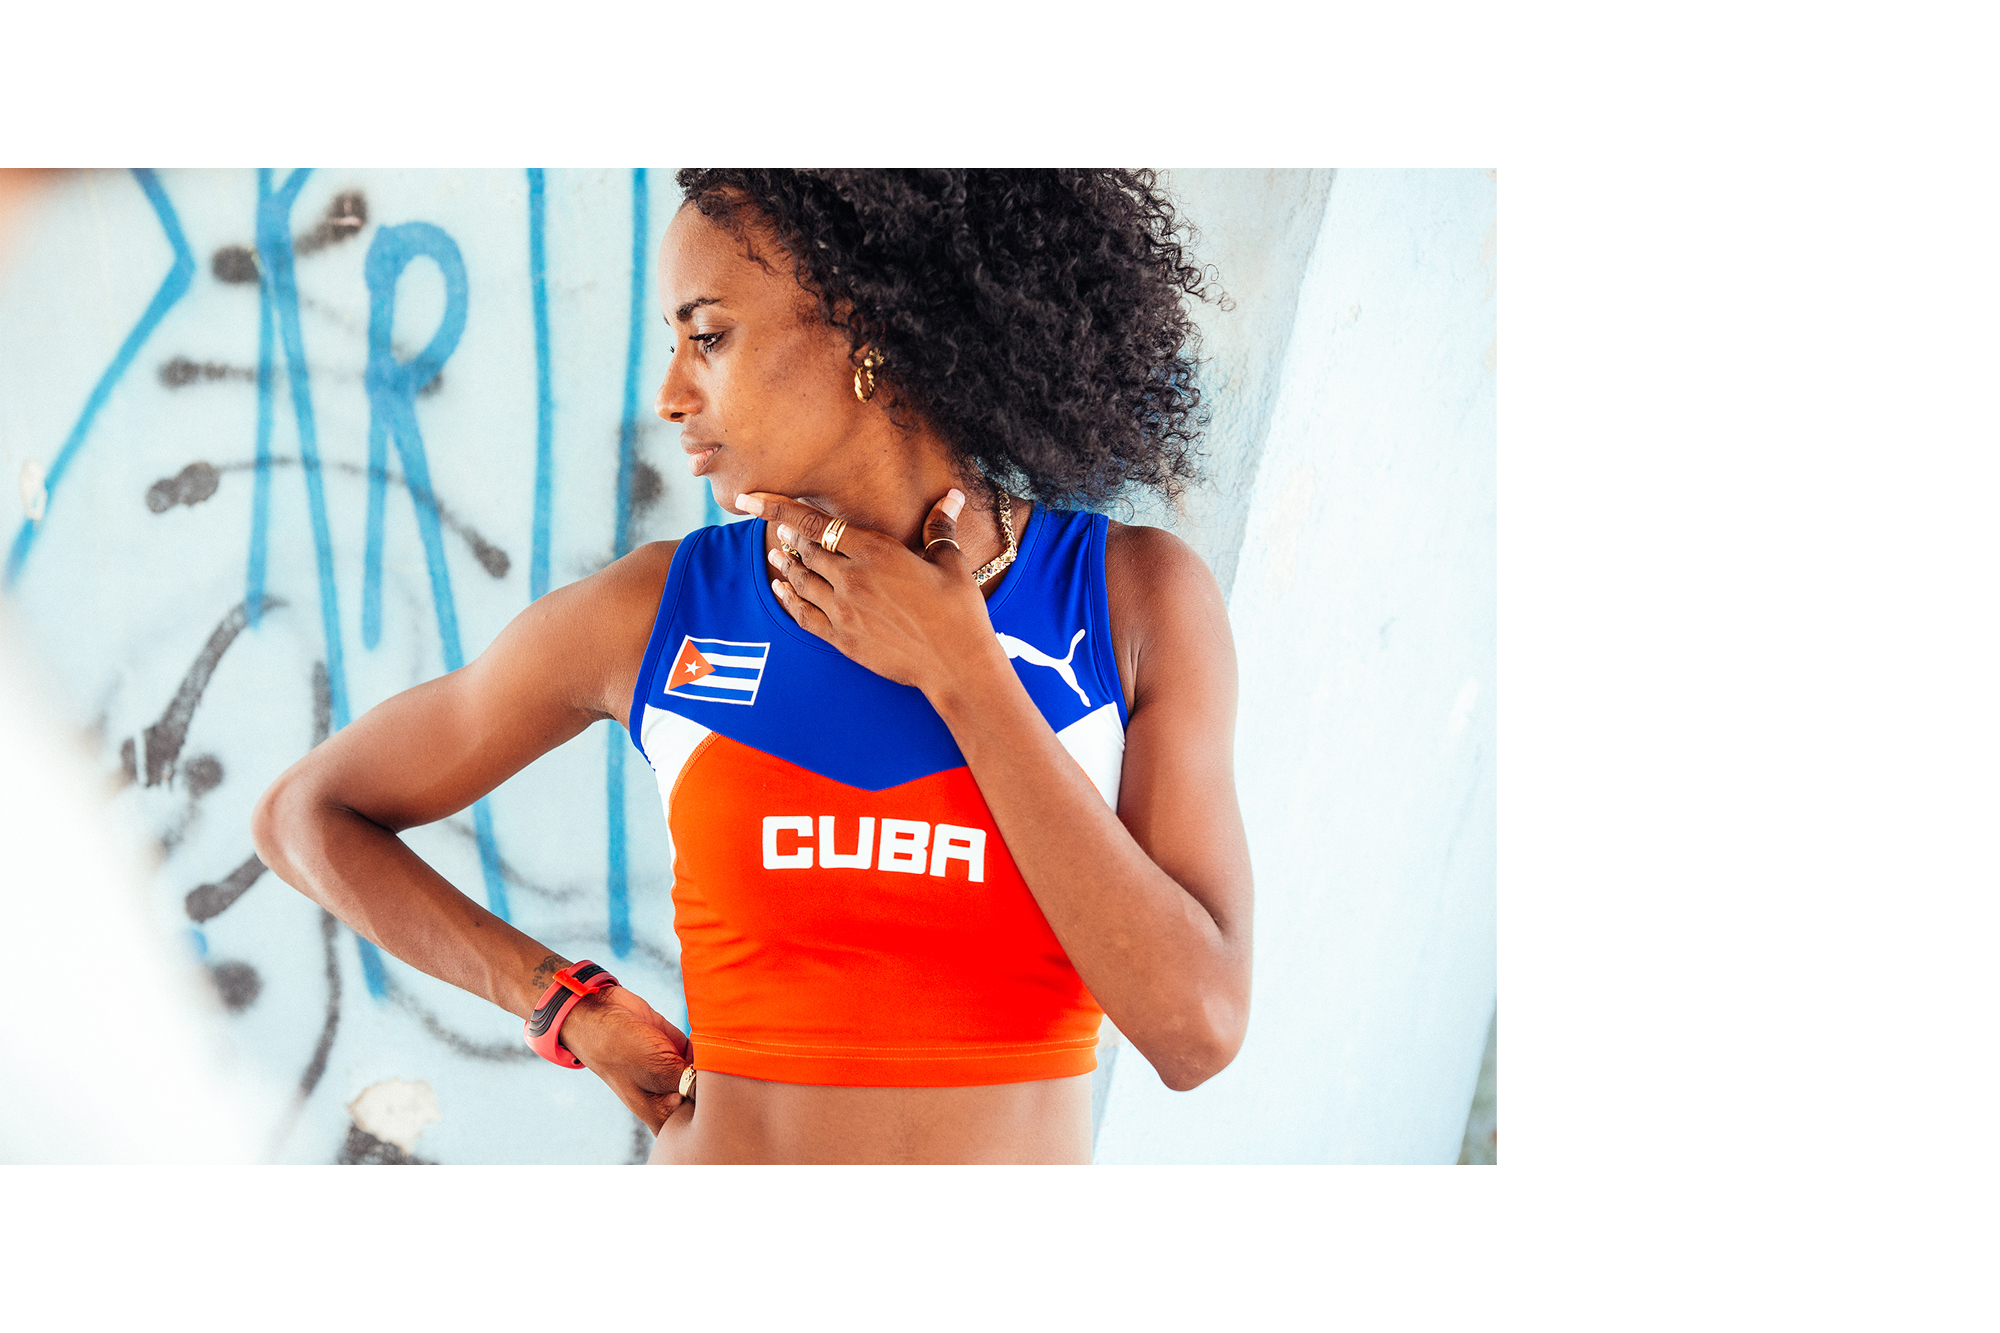 PUMA Running cuba havana track and field olympics Brenton Salo Photography